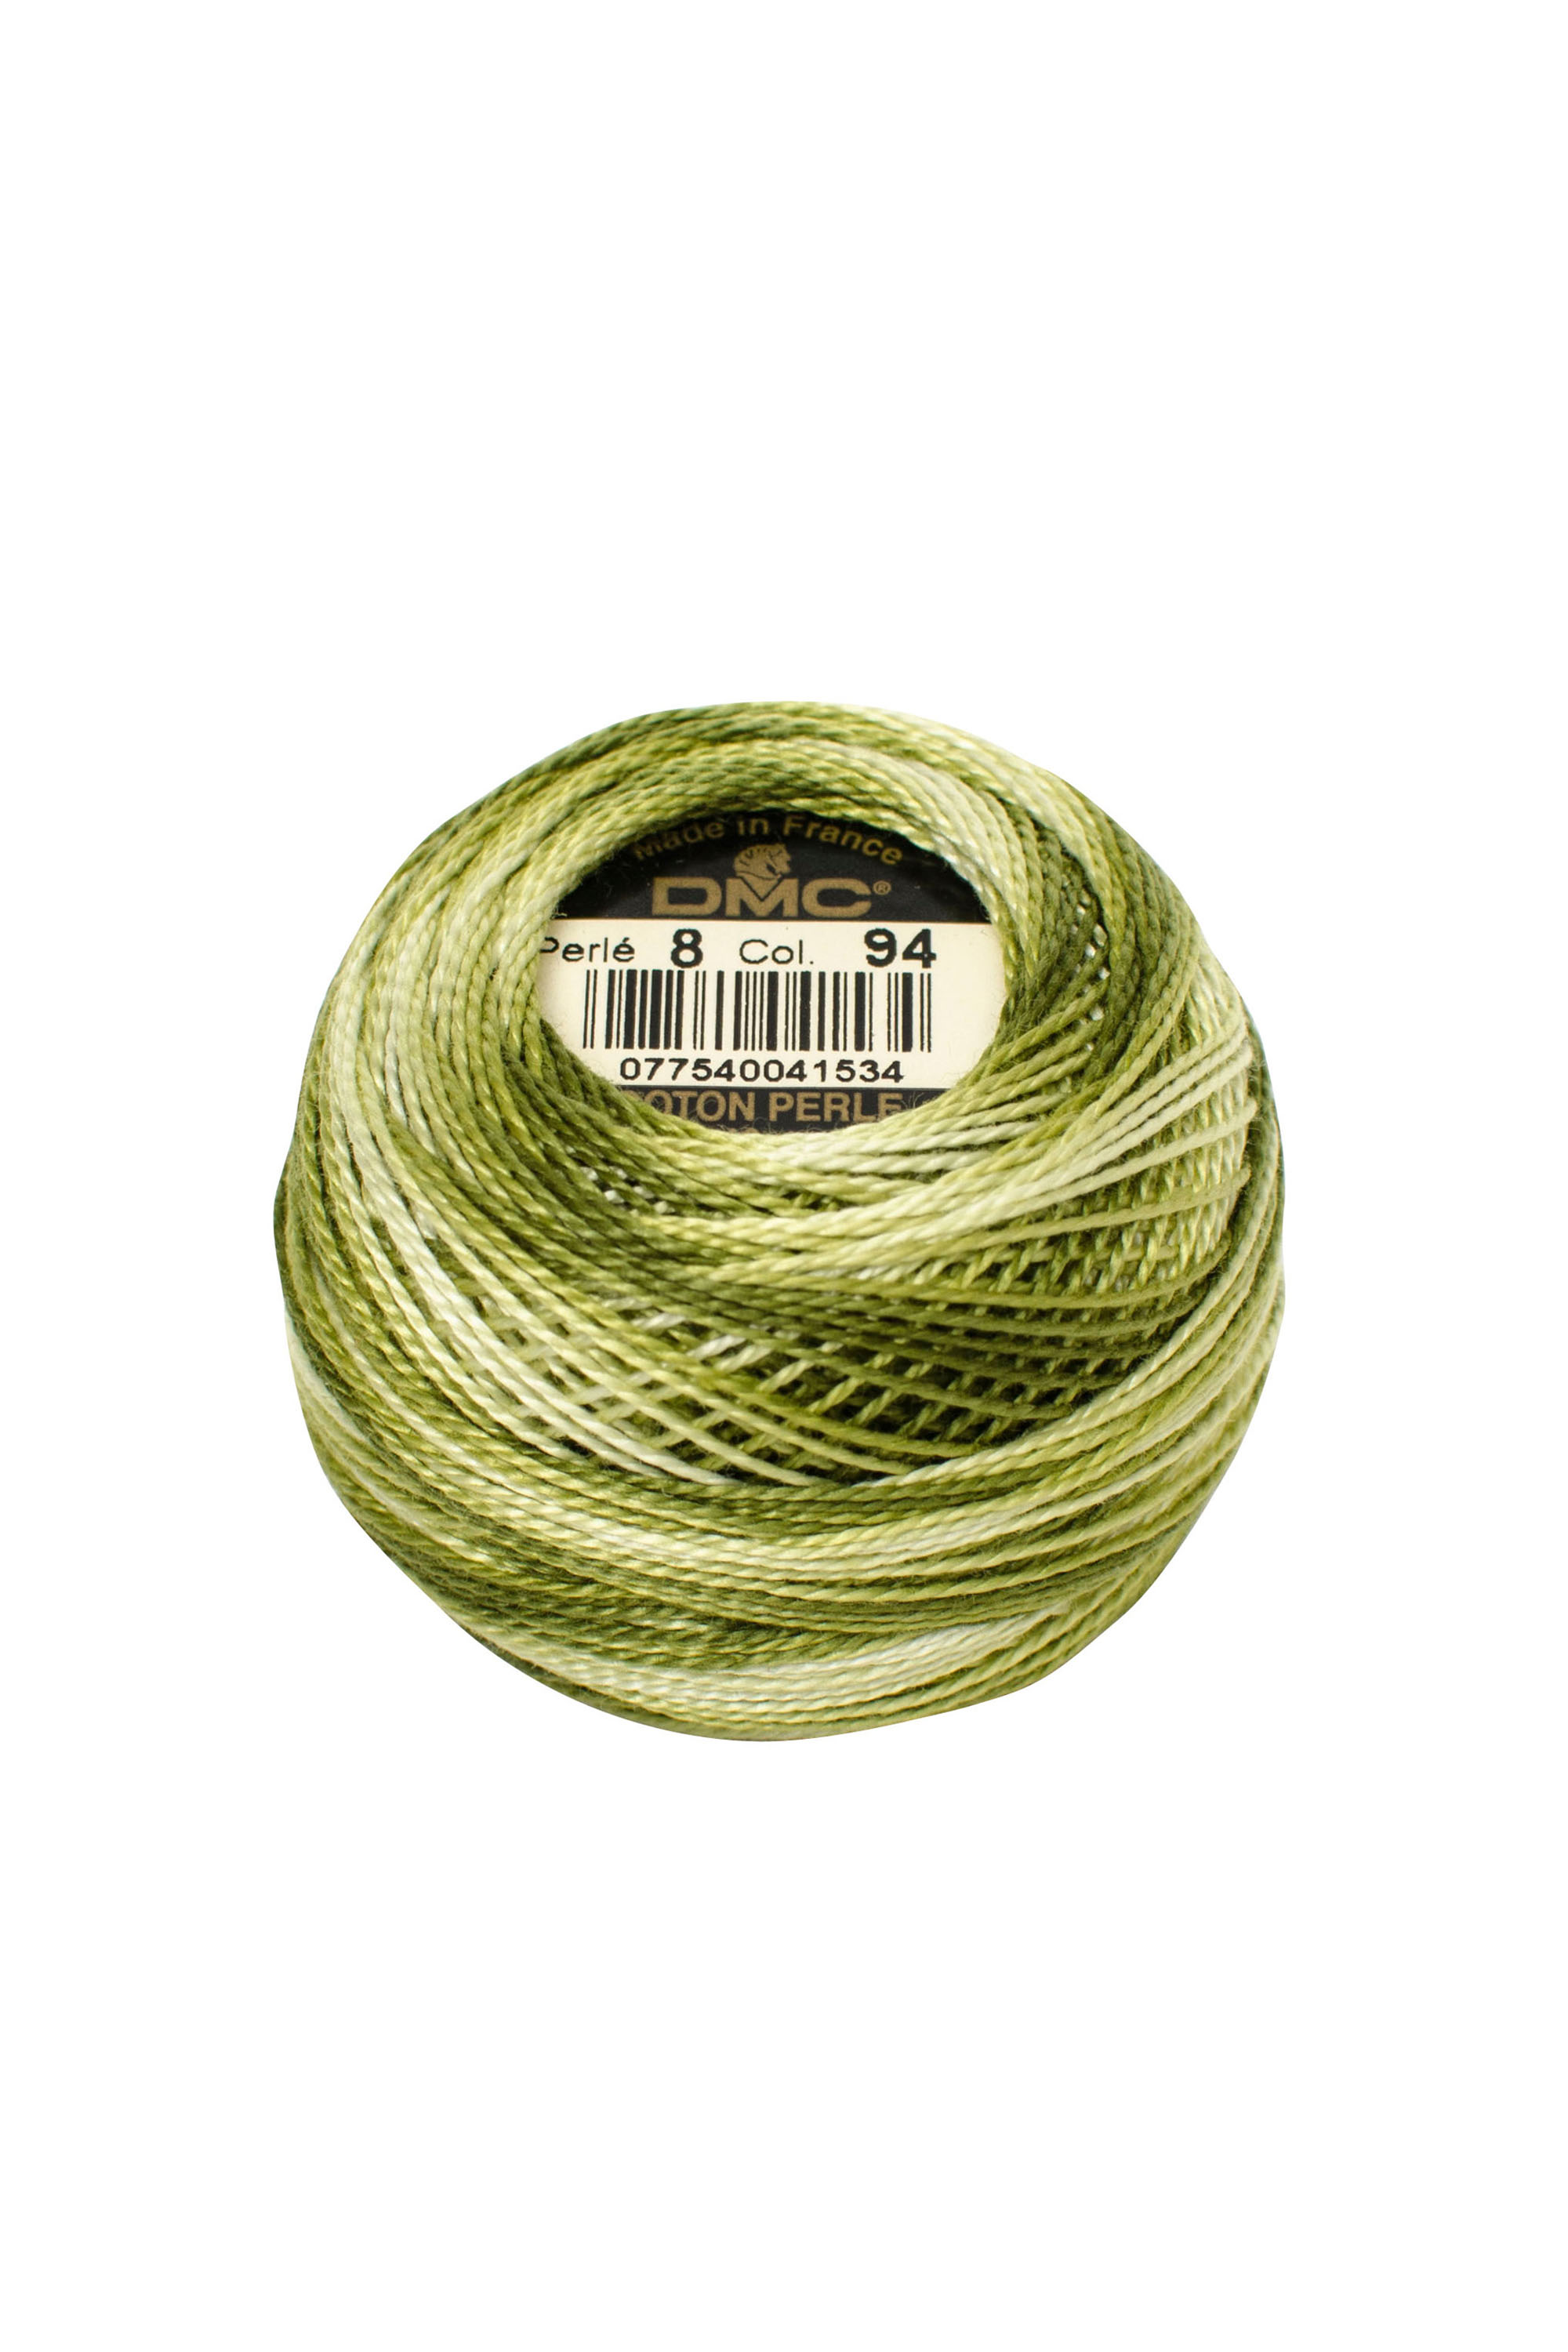 Variegated Green Perle 8 Embroidery Thread DMC8-94 - Colour Mix Pearl Cotton